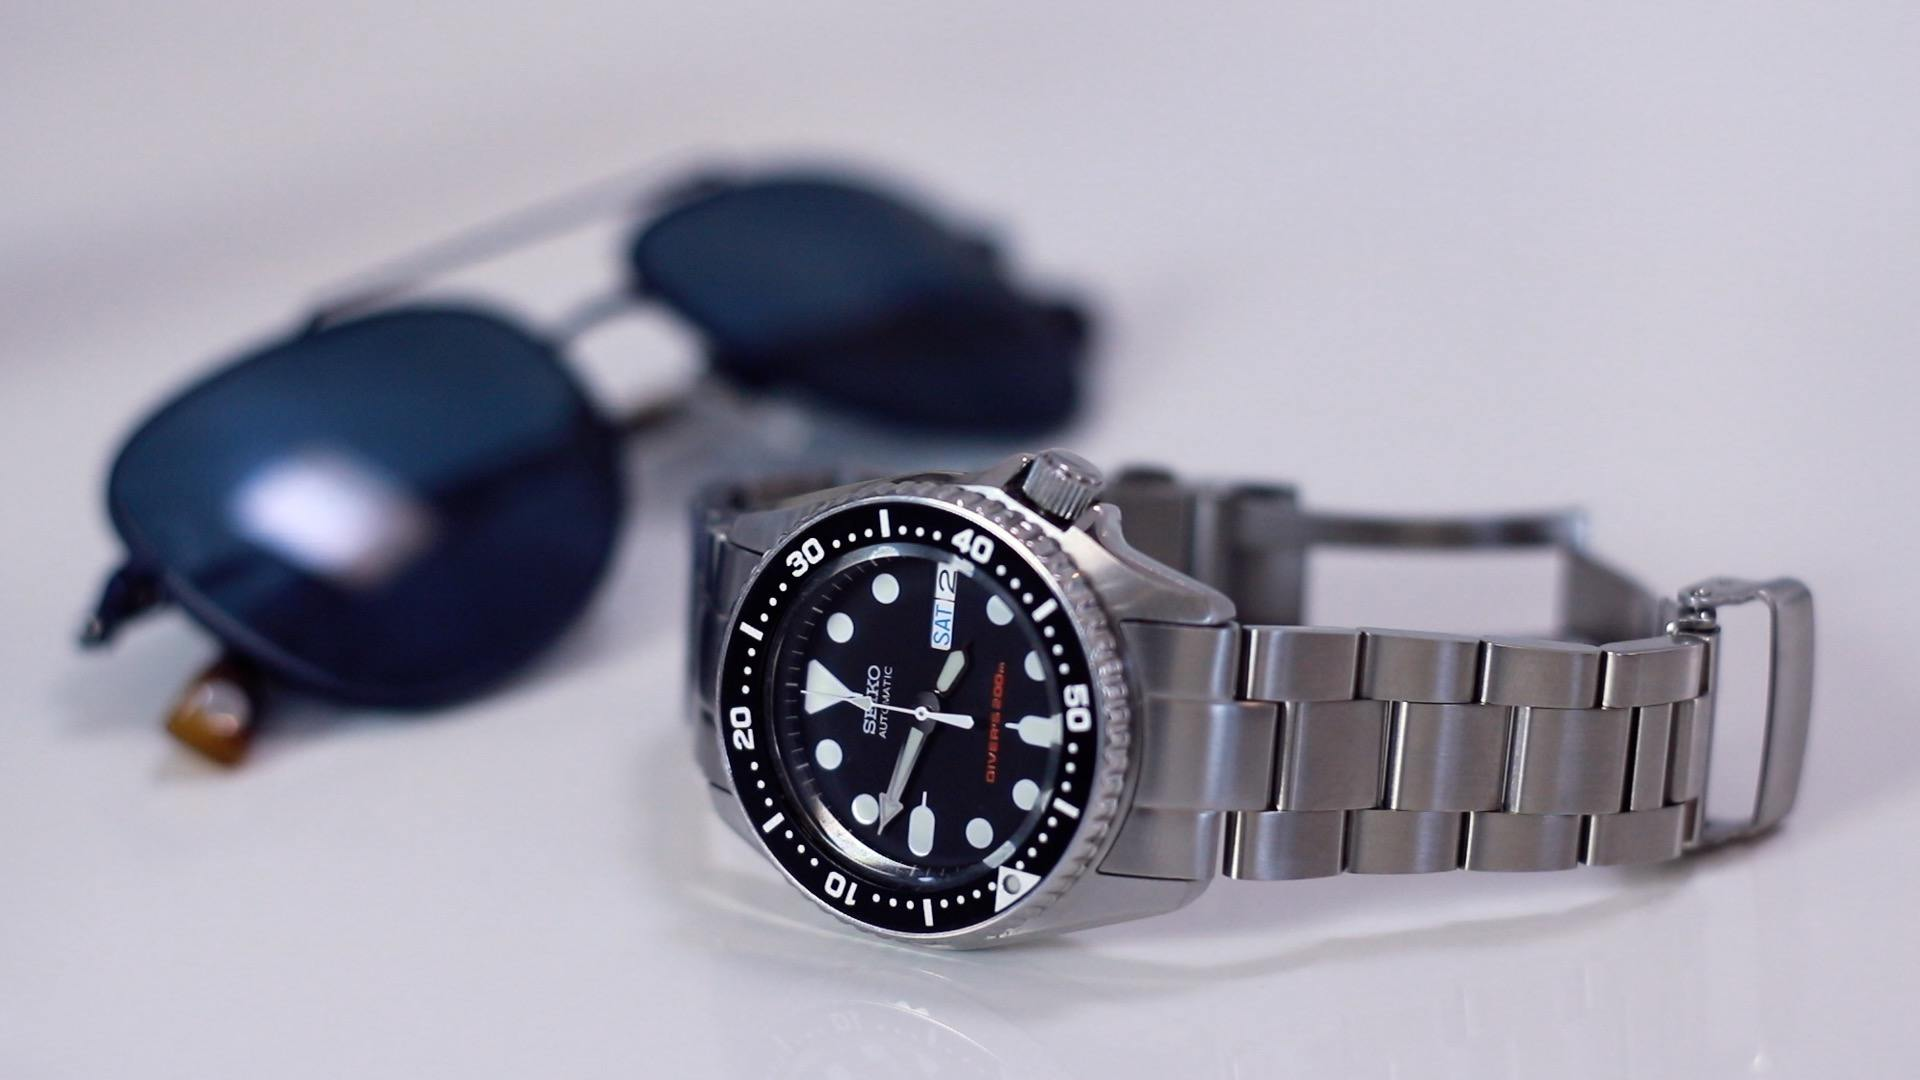 SKX013 and Warby Parker sunglasses